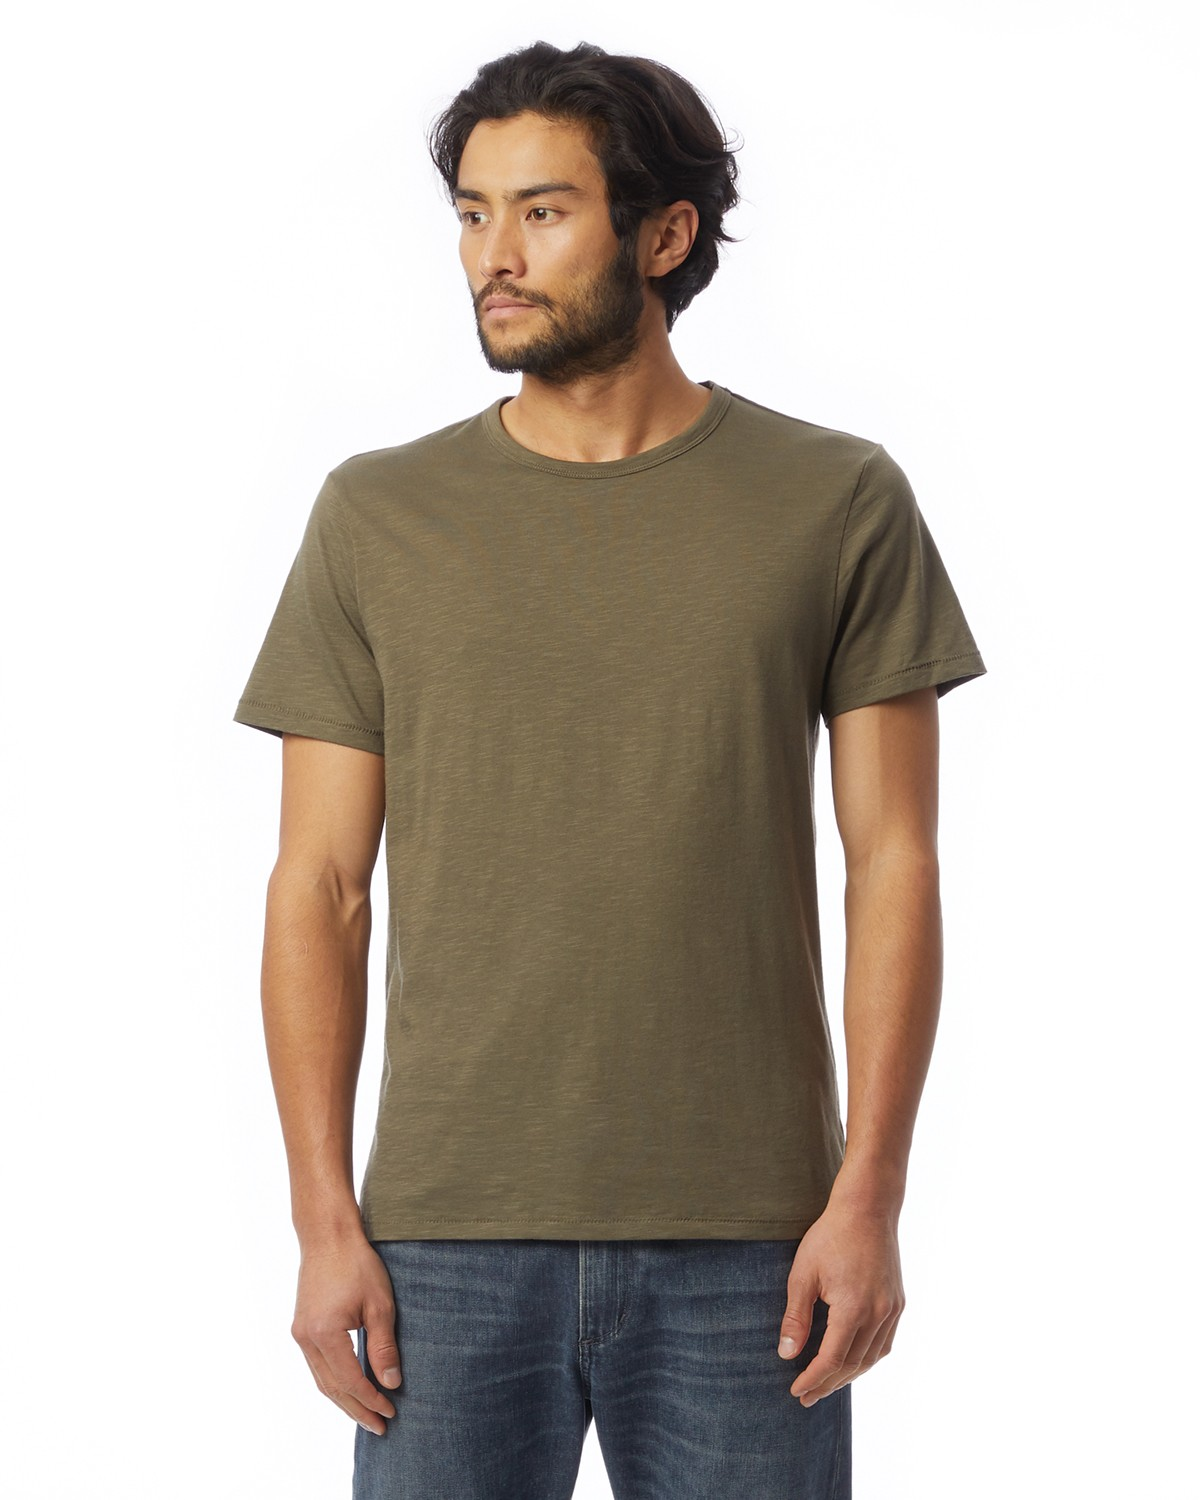 6094S1 Alternative DARK OLIVE